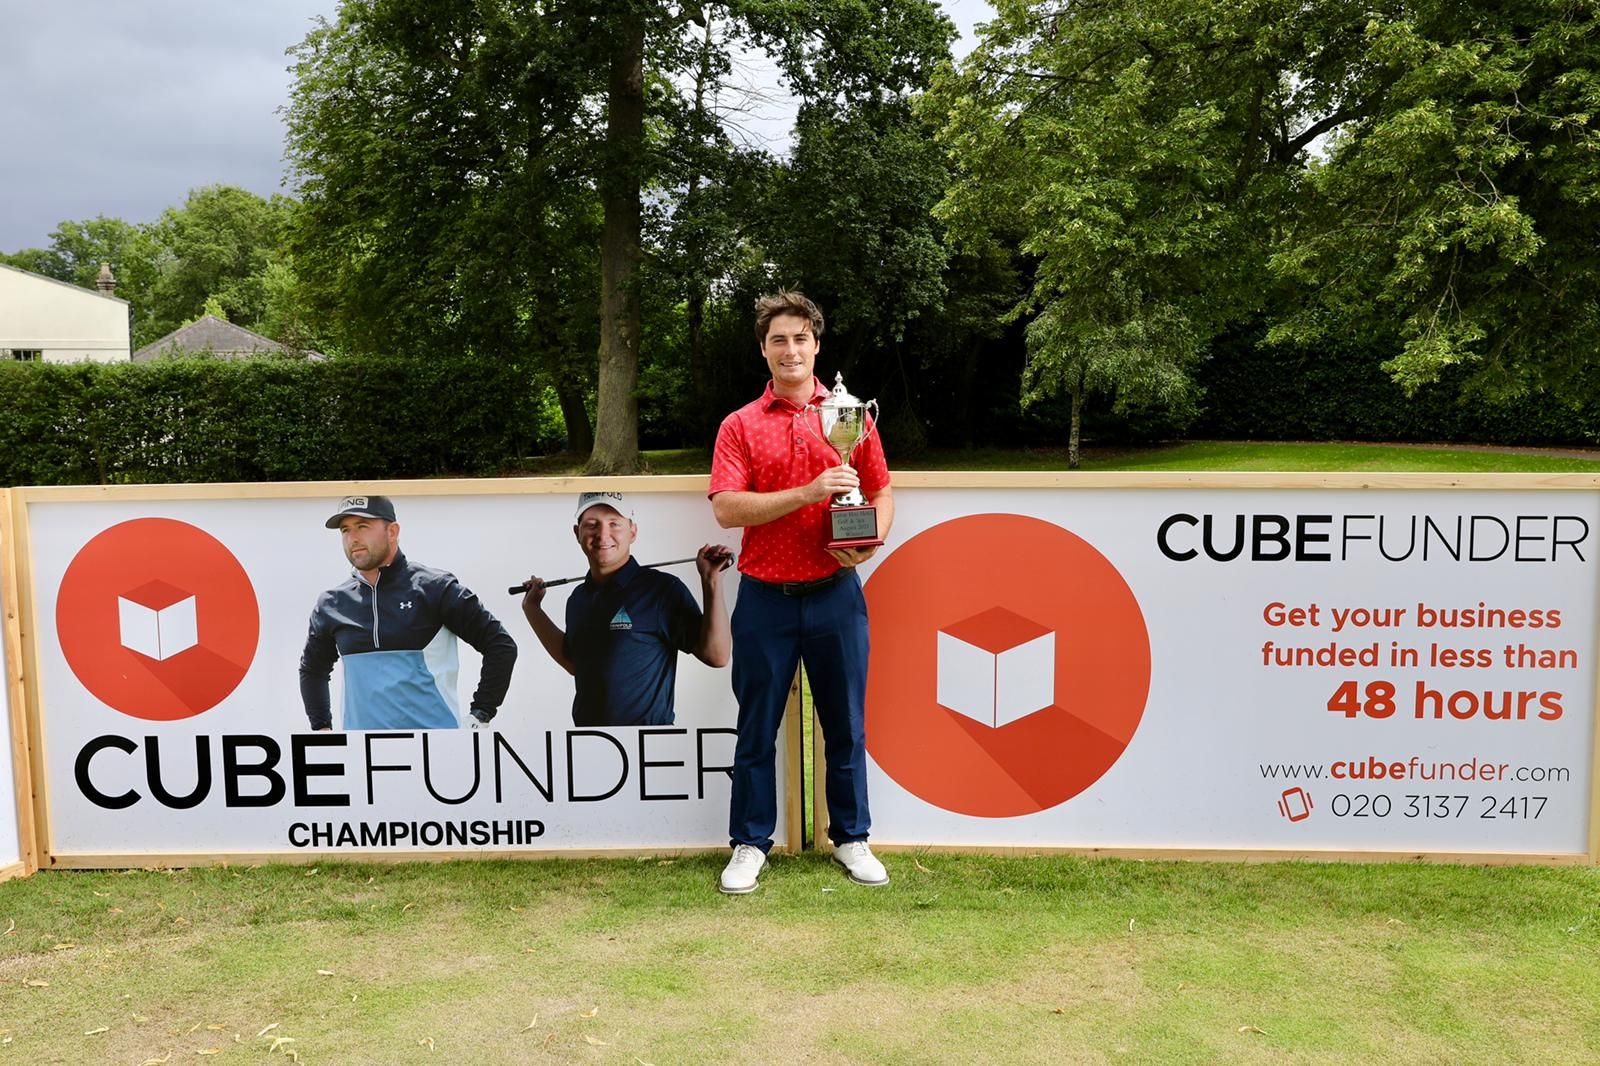 McElroy wins The Cubefunder Championship at Luton Hoo